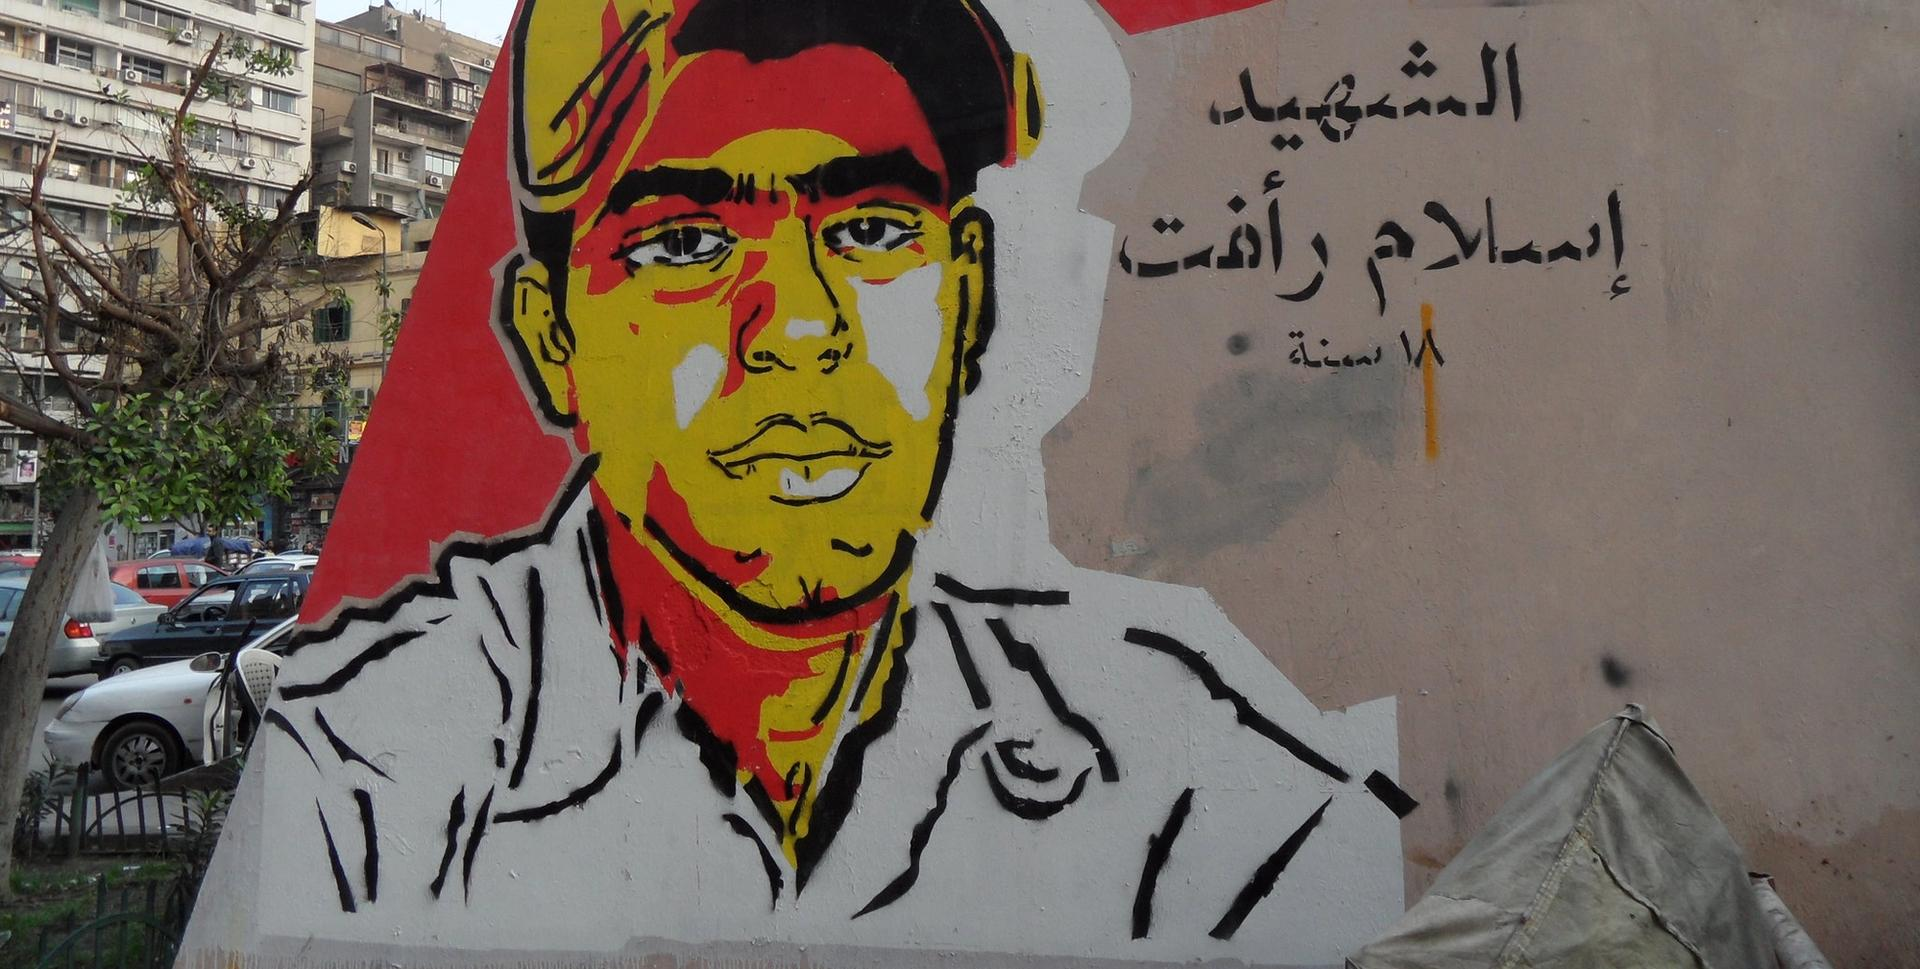 Ganzeer's memorial portrait for 18-year-old Islam Rafat Zinhoum who killed by a security truck on 28 January 2011. It was painted in March 2011 close to Tahrir Square. Photo: Alisdare Hickson Ganzeer's memorial portrait for 18-year-old Islam Rafat Zinhoum who killed by a security truck on 28 January 2011. It was painted in March 2011 close to Tahrir Square. Photo: Alisdare Hickson